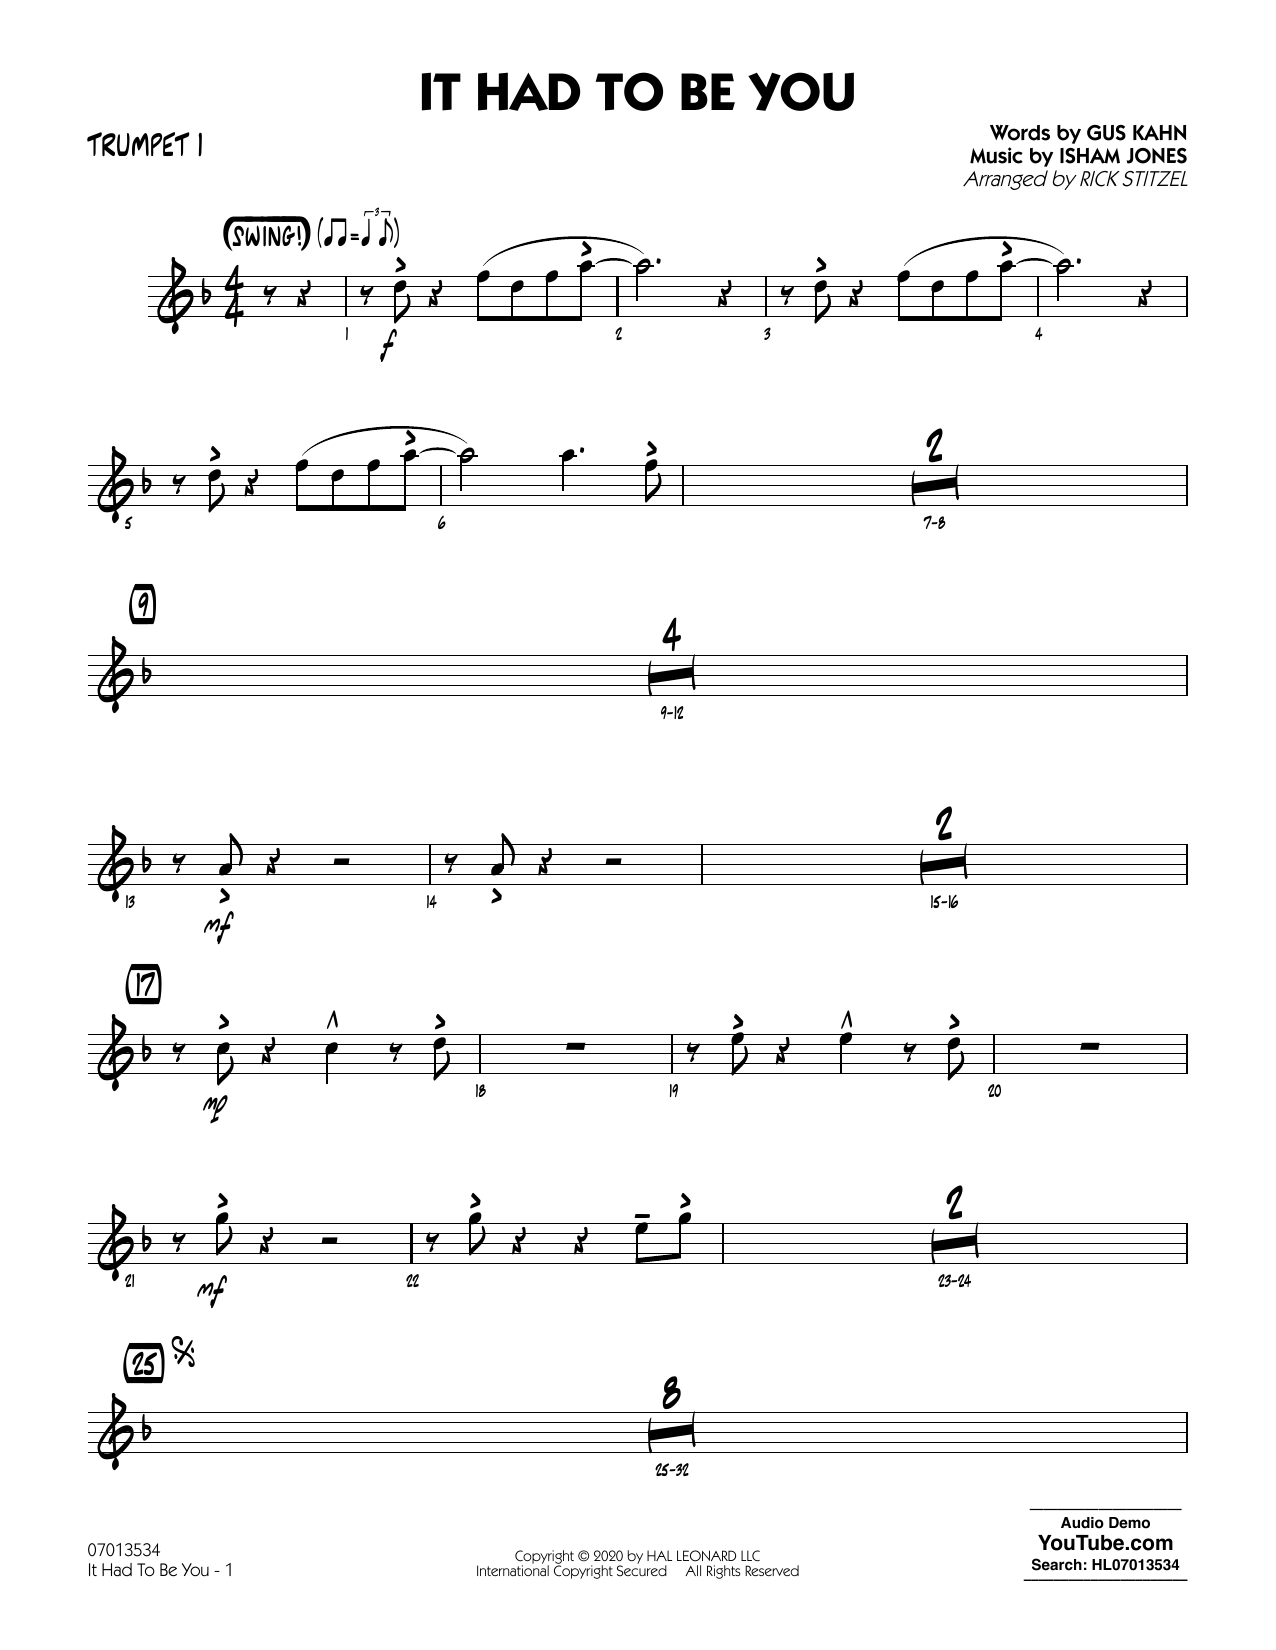 It Had to Be You (arr. Rick Stitzel) - Trumpet 1 Sheet Music